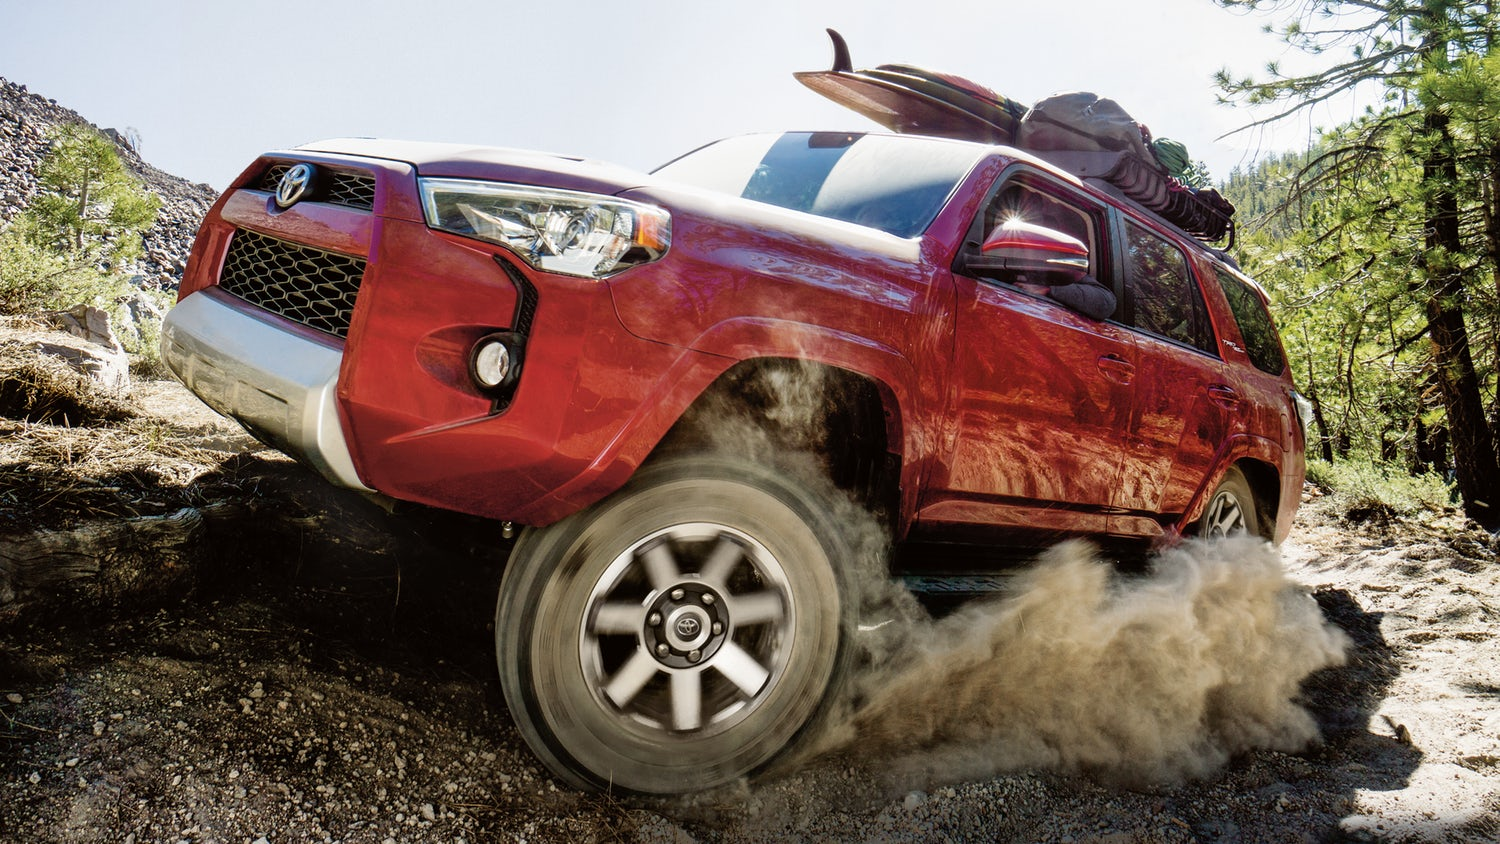 2019 Toyota 4Runner for Sale near Lenexa, KS